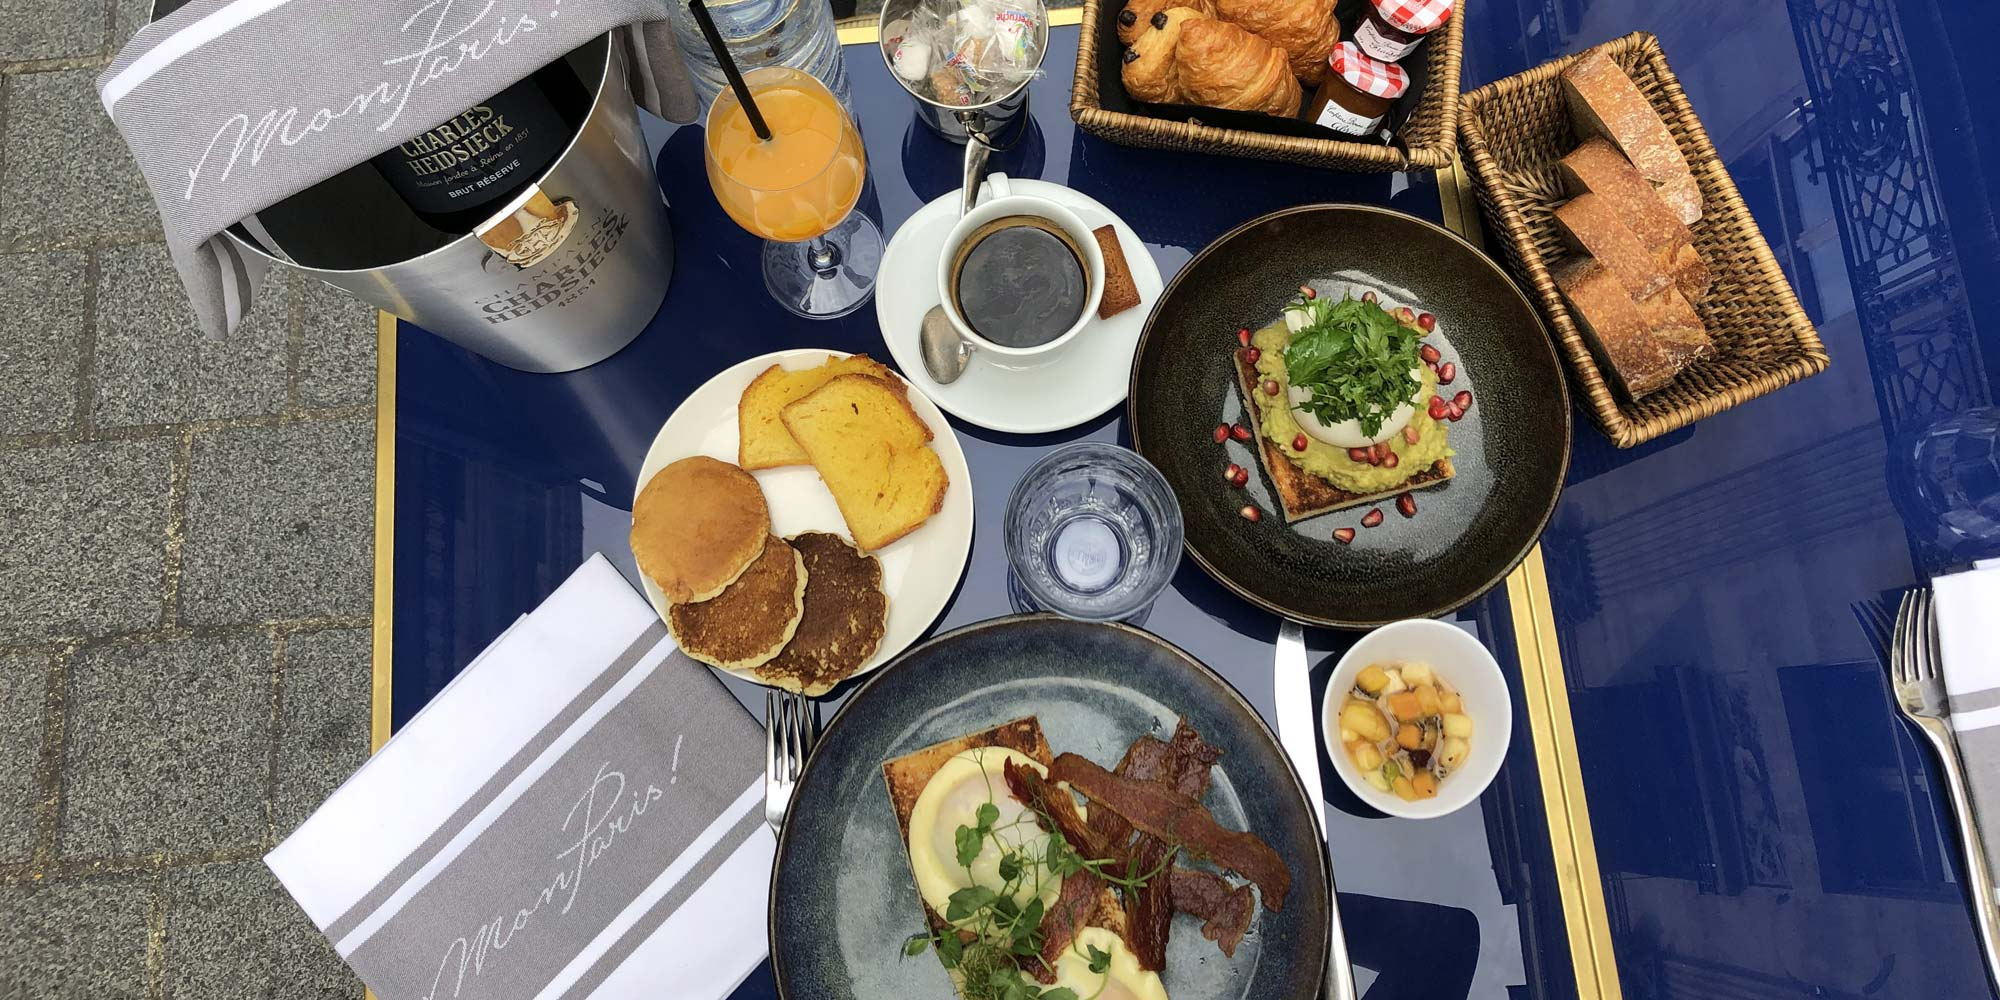 Brunch En Terrasse Paris Brunch Mon Paris 75009 Paris Oubruncher